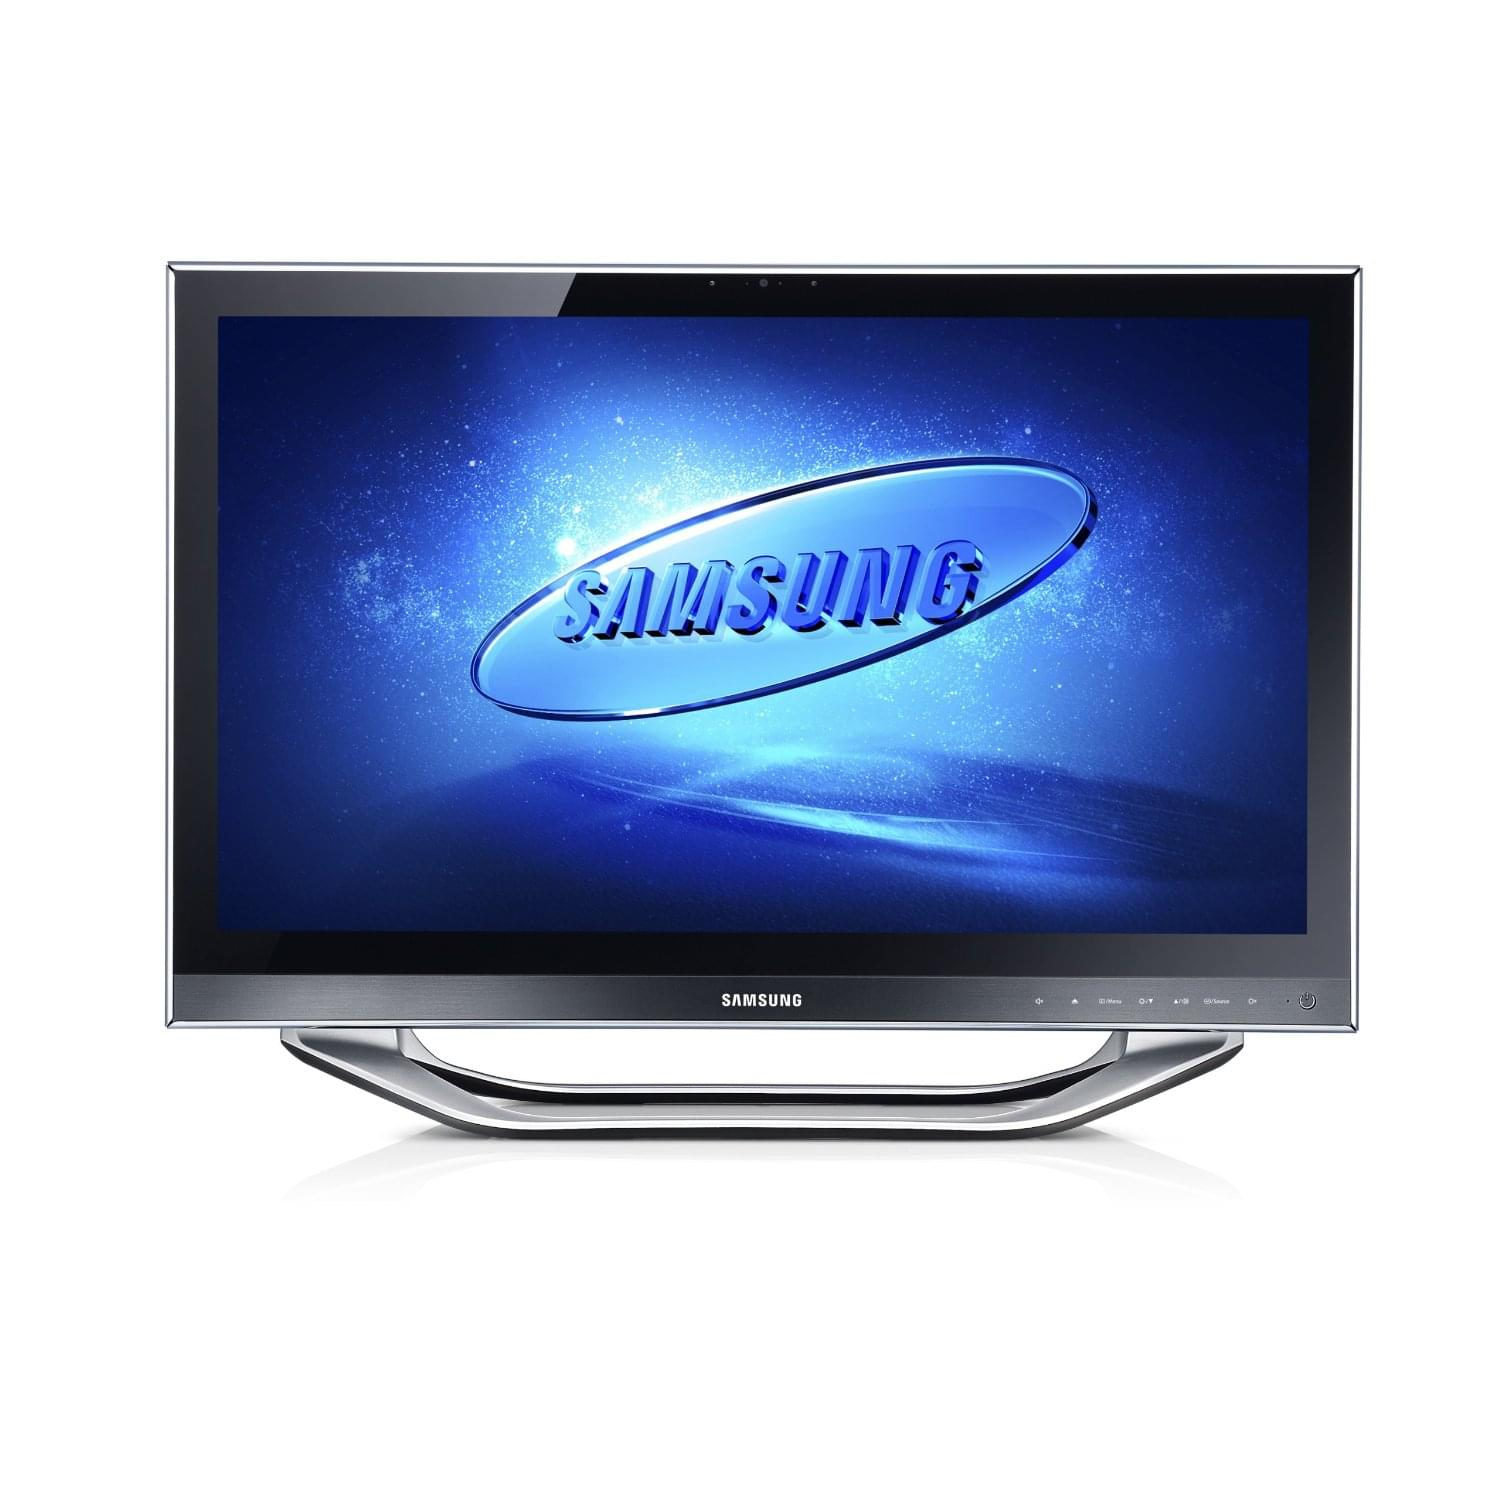 Samsung DP700A3D-S01FR - All-In-One PC Samsung - Cybertek.fr - 0